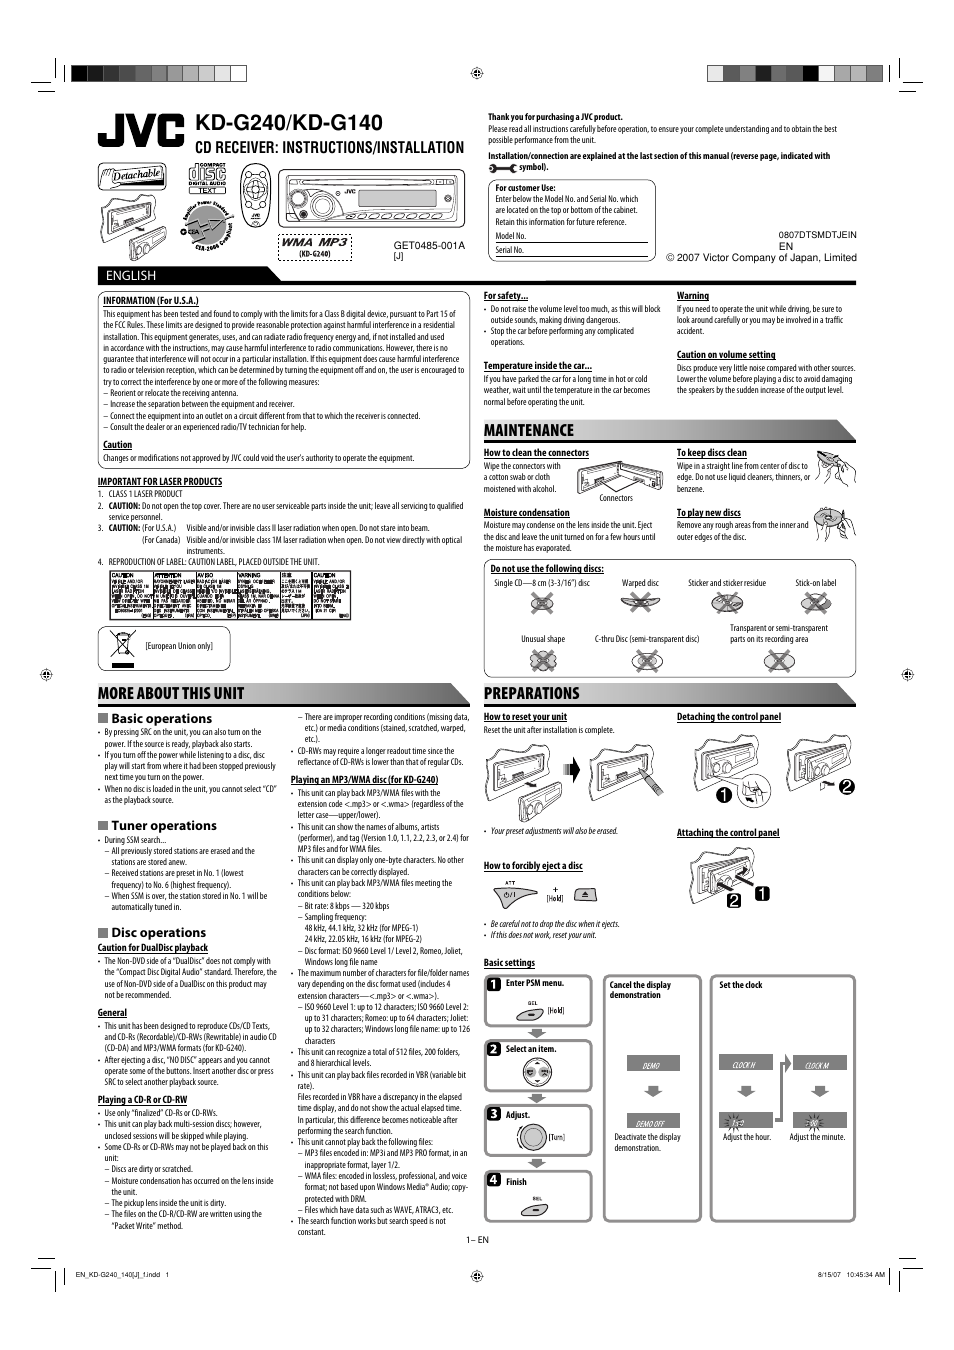 jvc kd g140 user manual 4 pages also for kd g240 rh manualsdir com